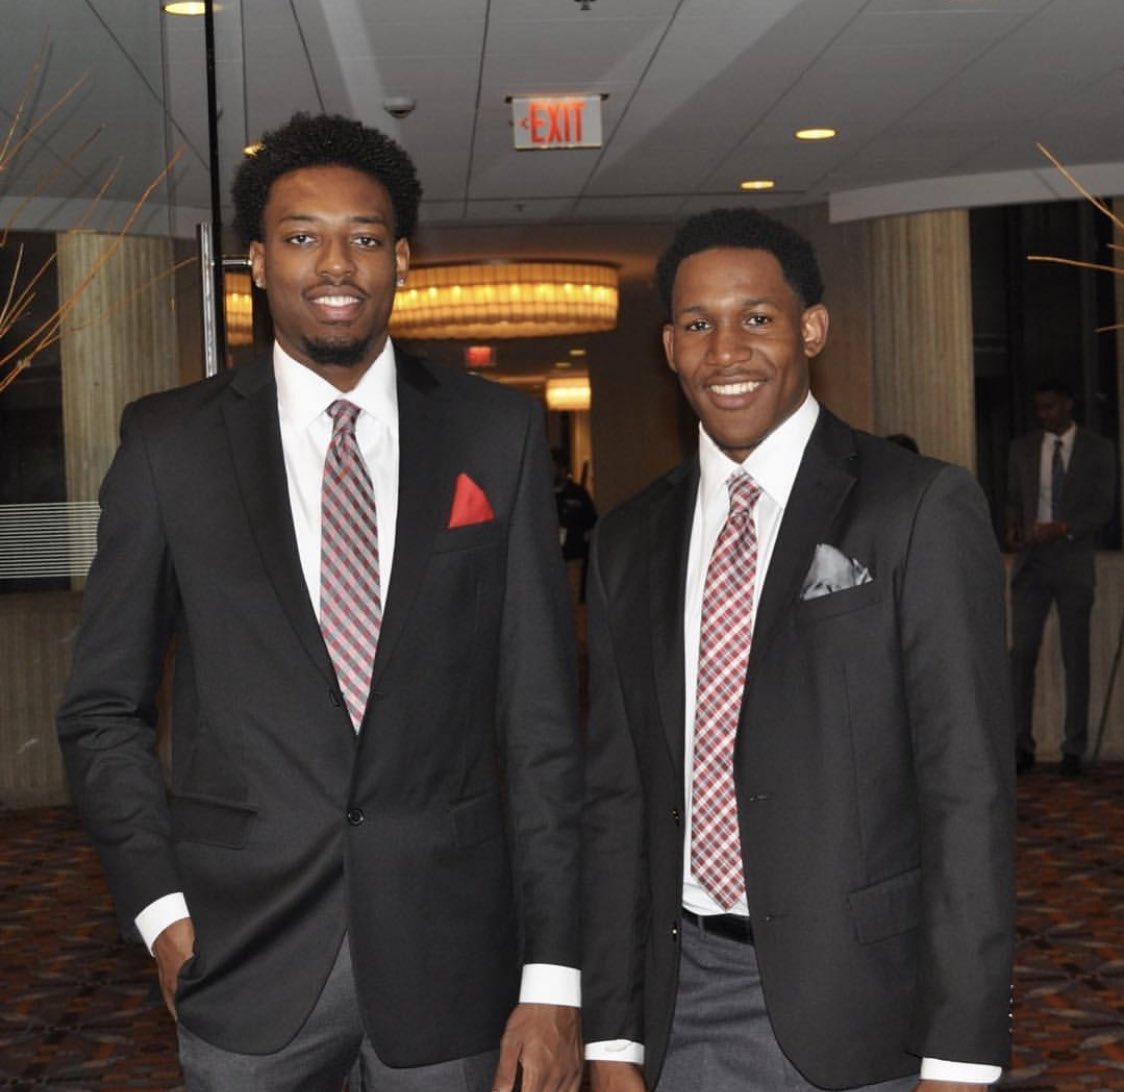 Andre Wesson and C.J. Jackson represented Ohio State Basketball well at #B1GMediaDay today. <br>http://pic.twitter.com/o60yWE3cam